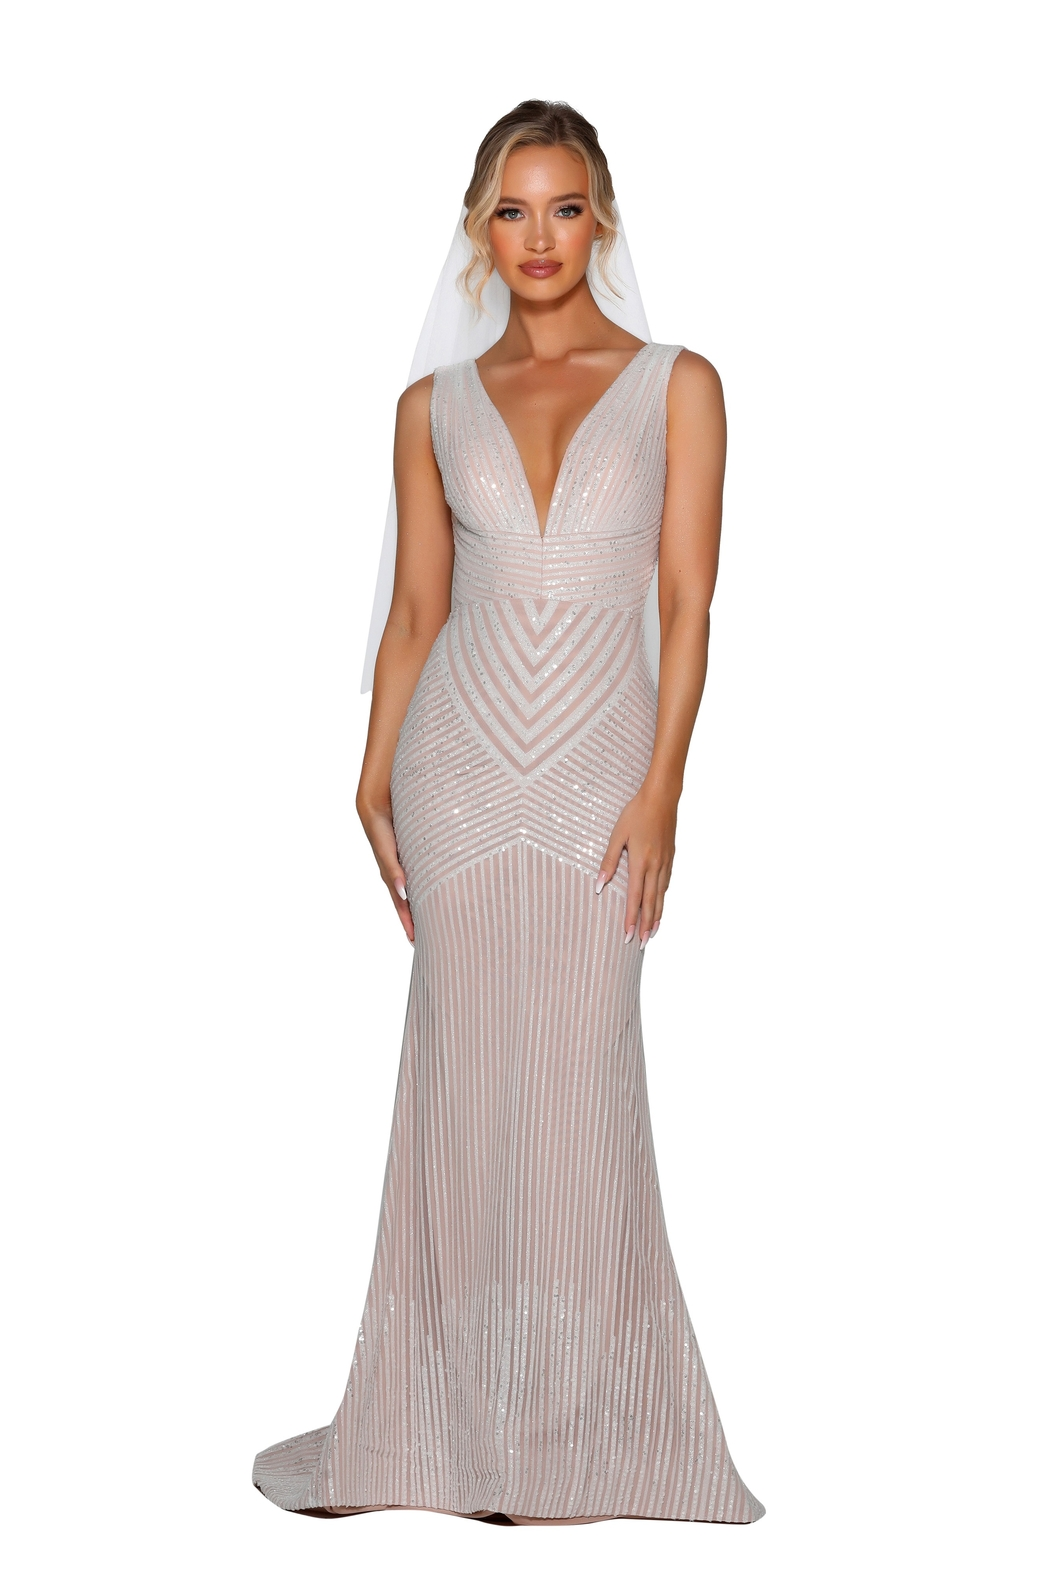 PORTIA AND SCARLETT Ivory Nude Glitter Embroidered Bridal Gown - Main Image